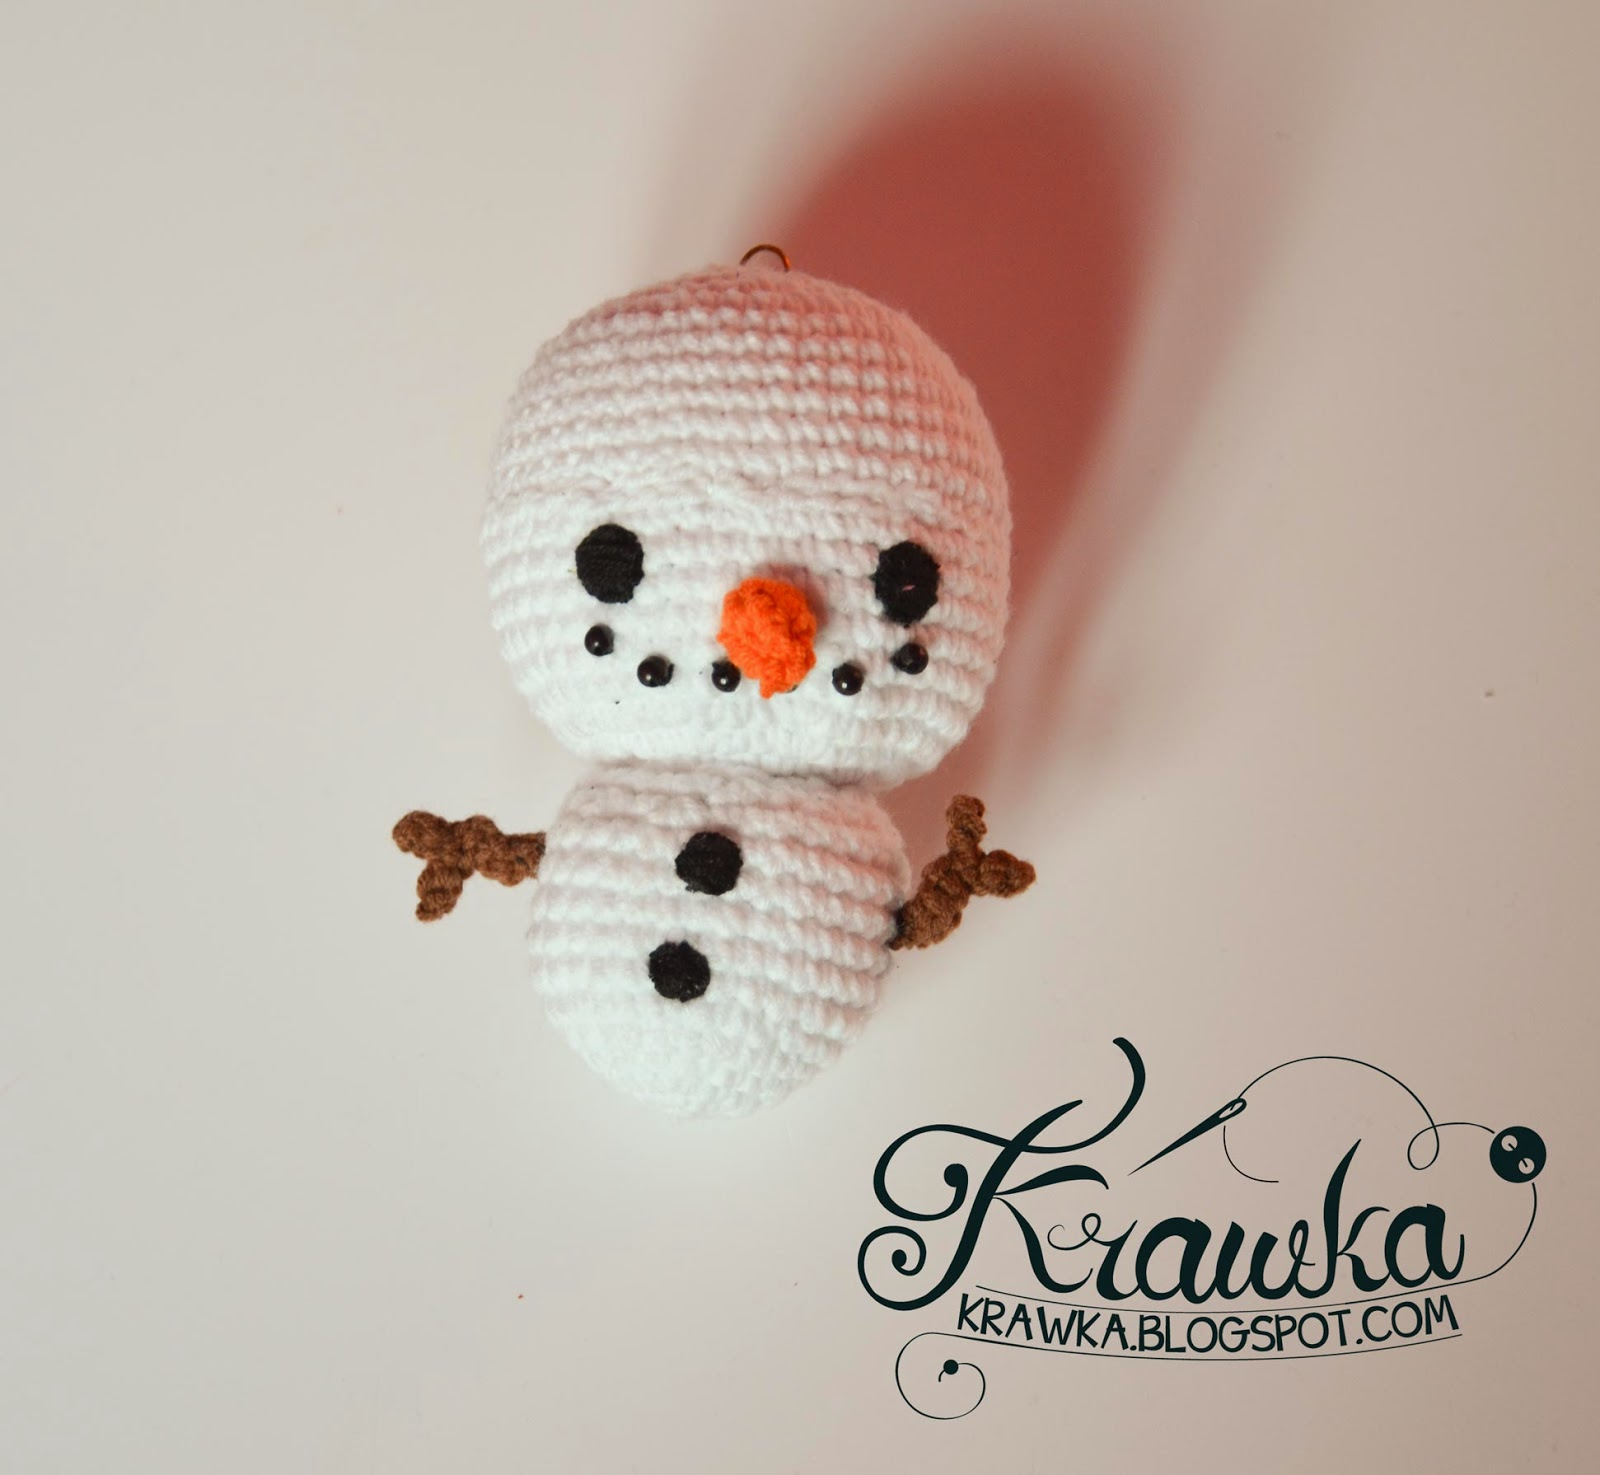 Krawka: Snowman Christmas Tree ornament crochet free pattern